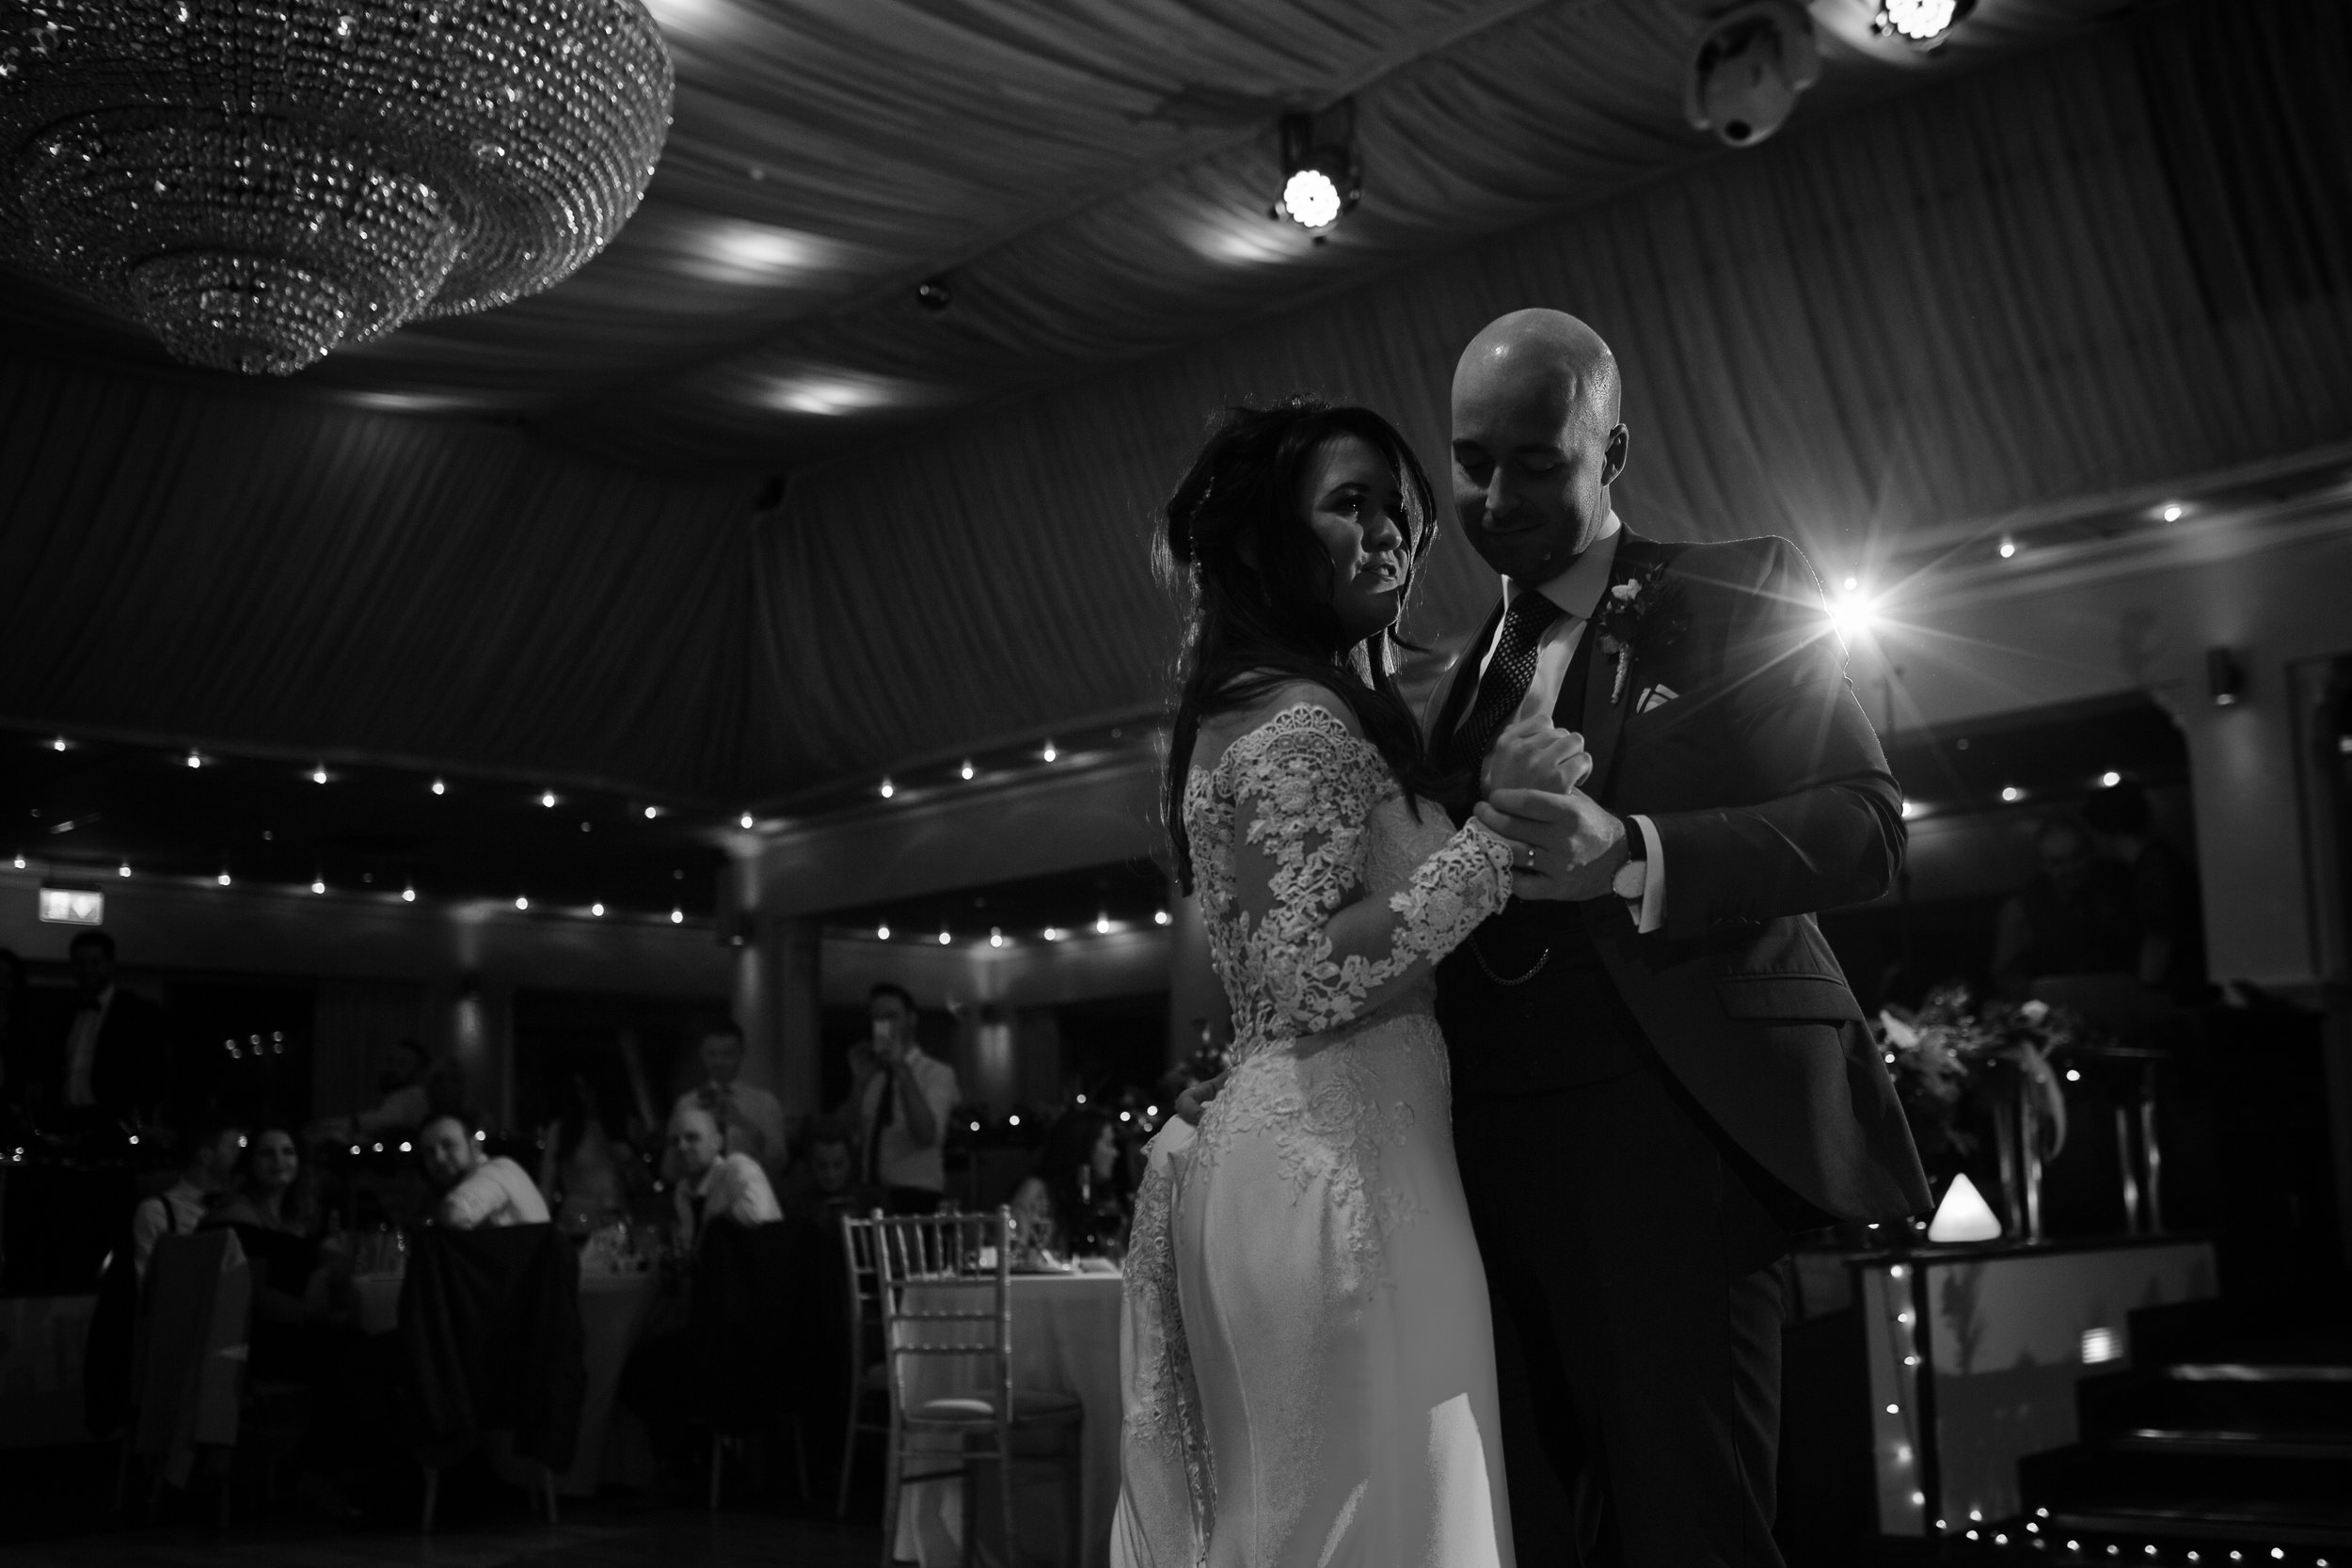 Mark_Barnes_Northern_Ireland_Wedding_Photography_Harveys_Point_Wedding_Photography_Adam&Gemma-1-4.jpg